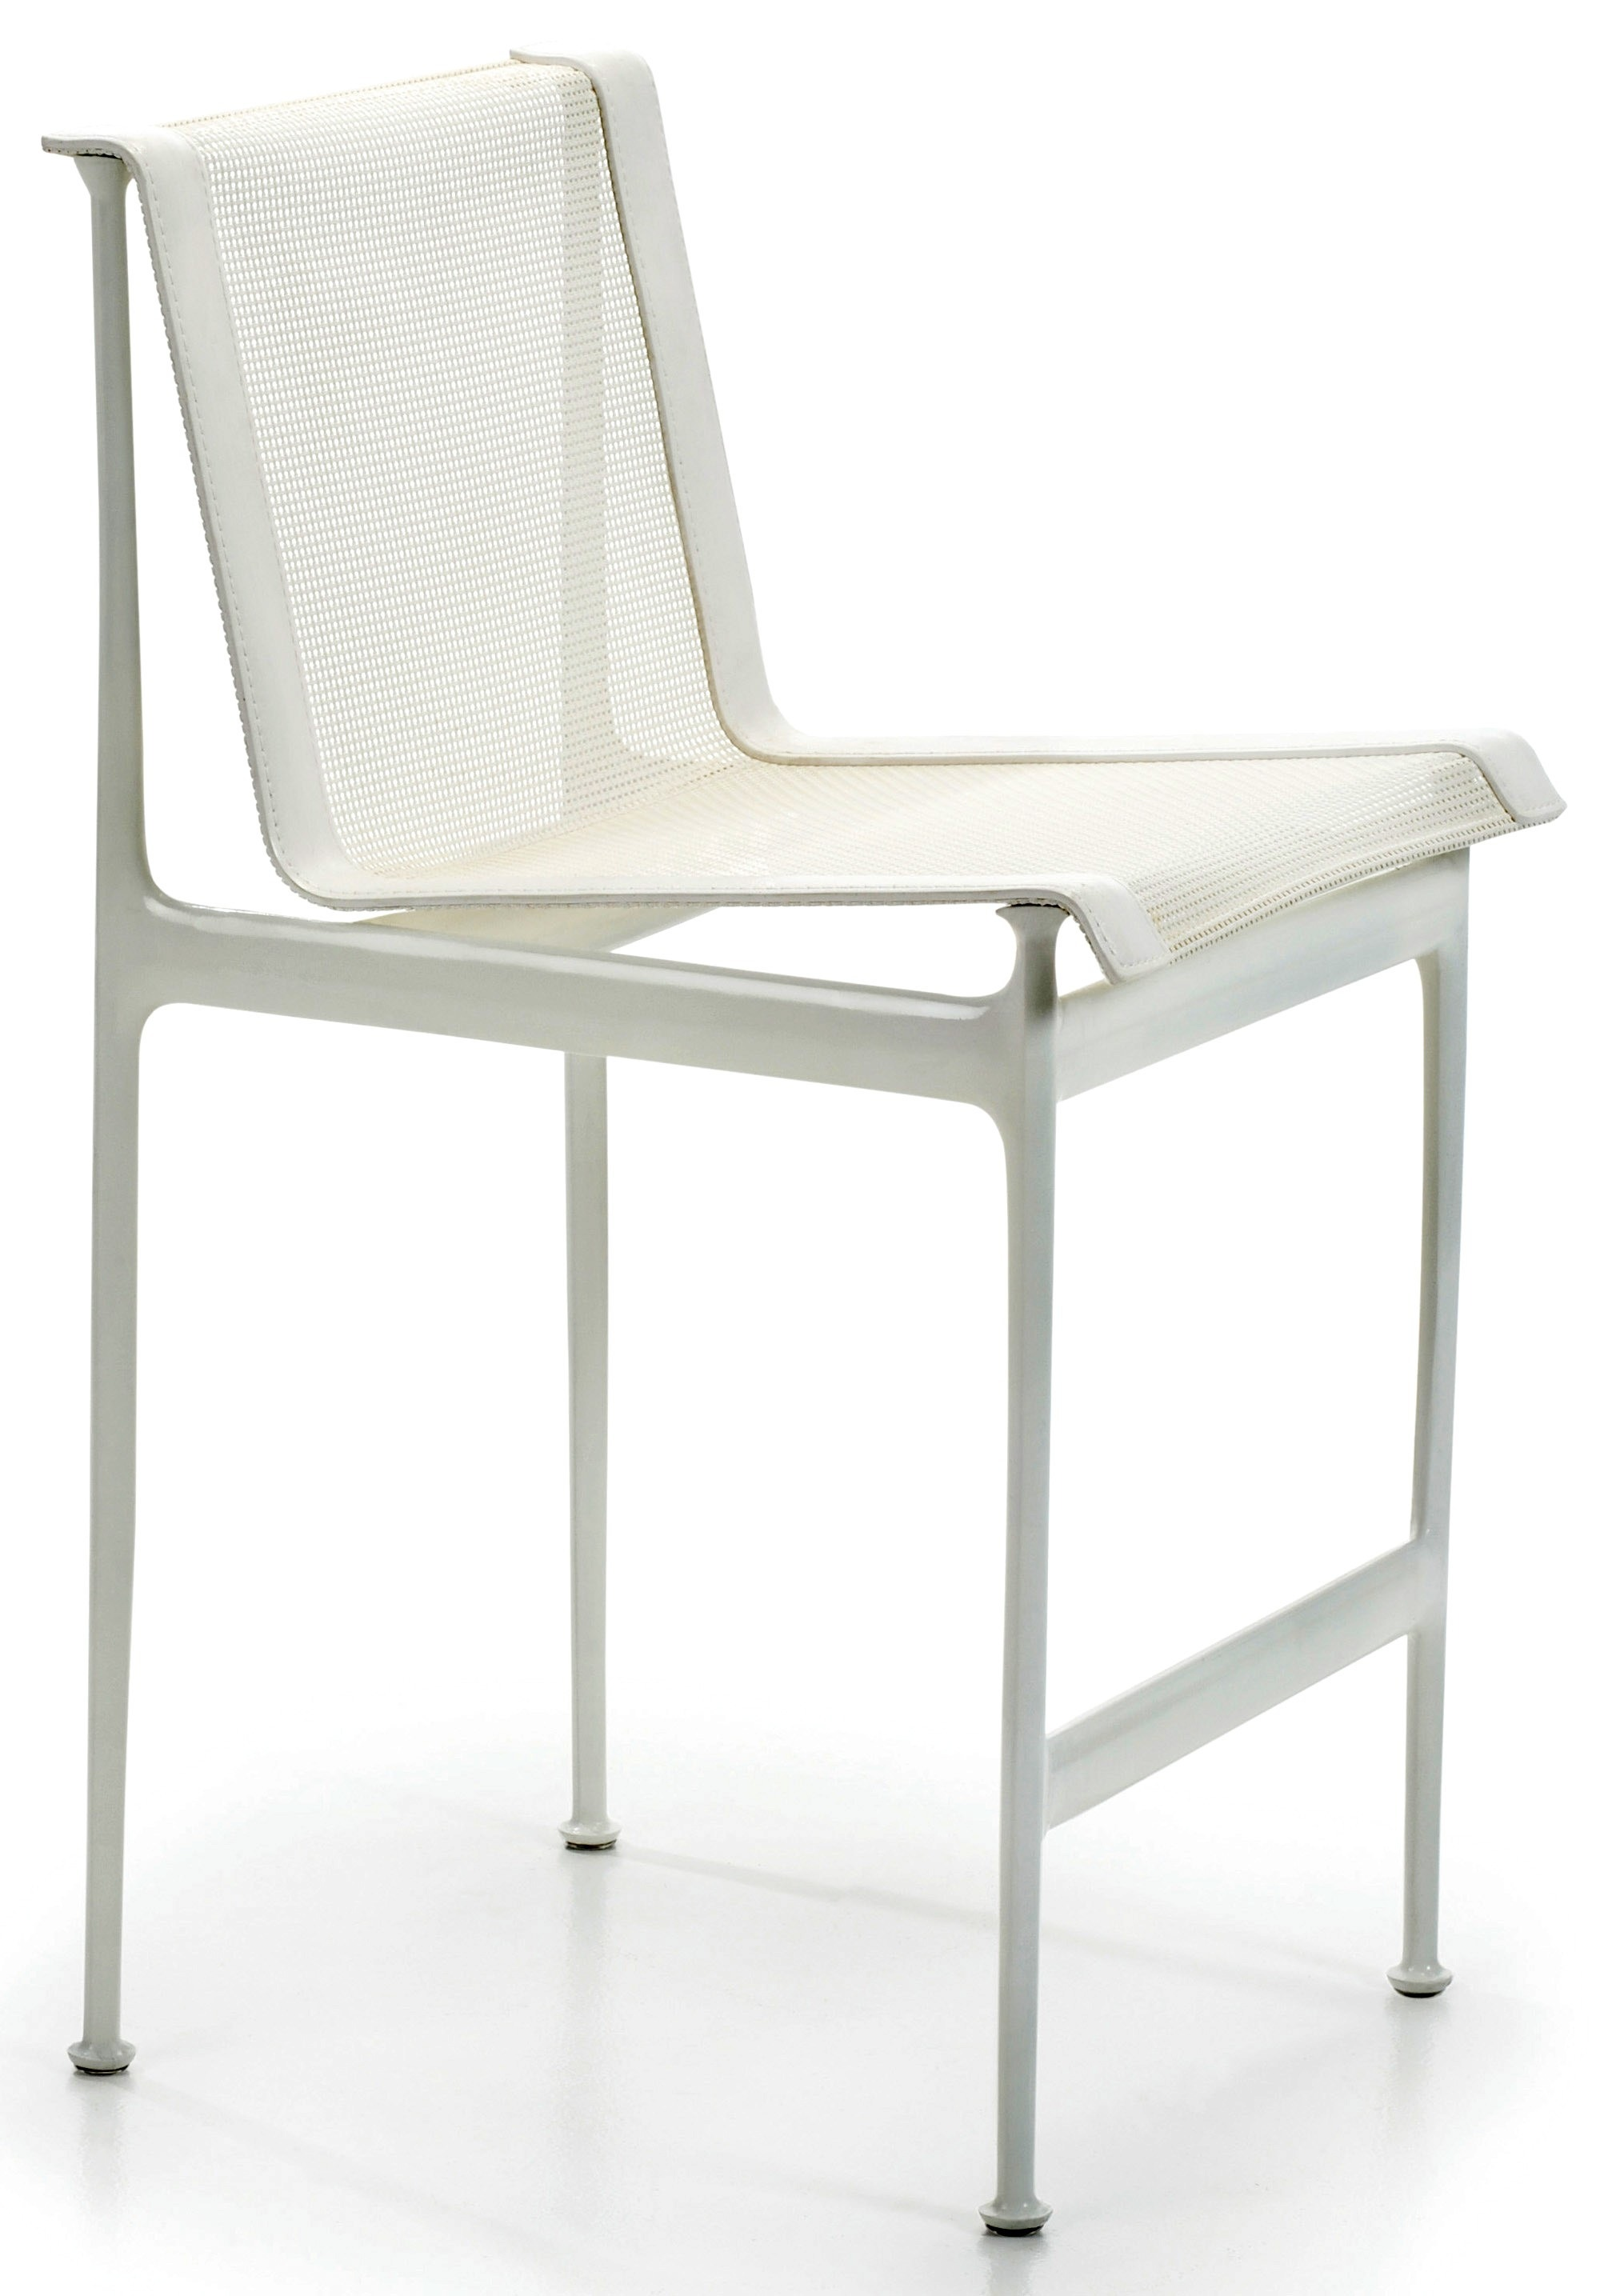 richard schultz  collection counter height stool  modern planet - richard schultz  collection counter height stool